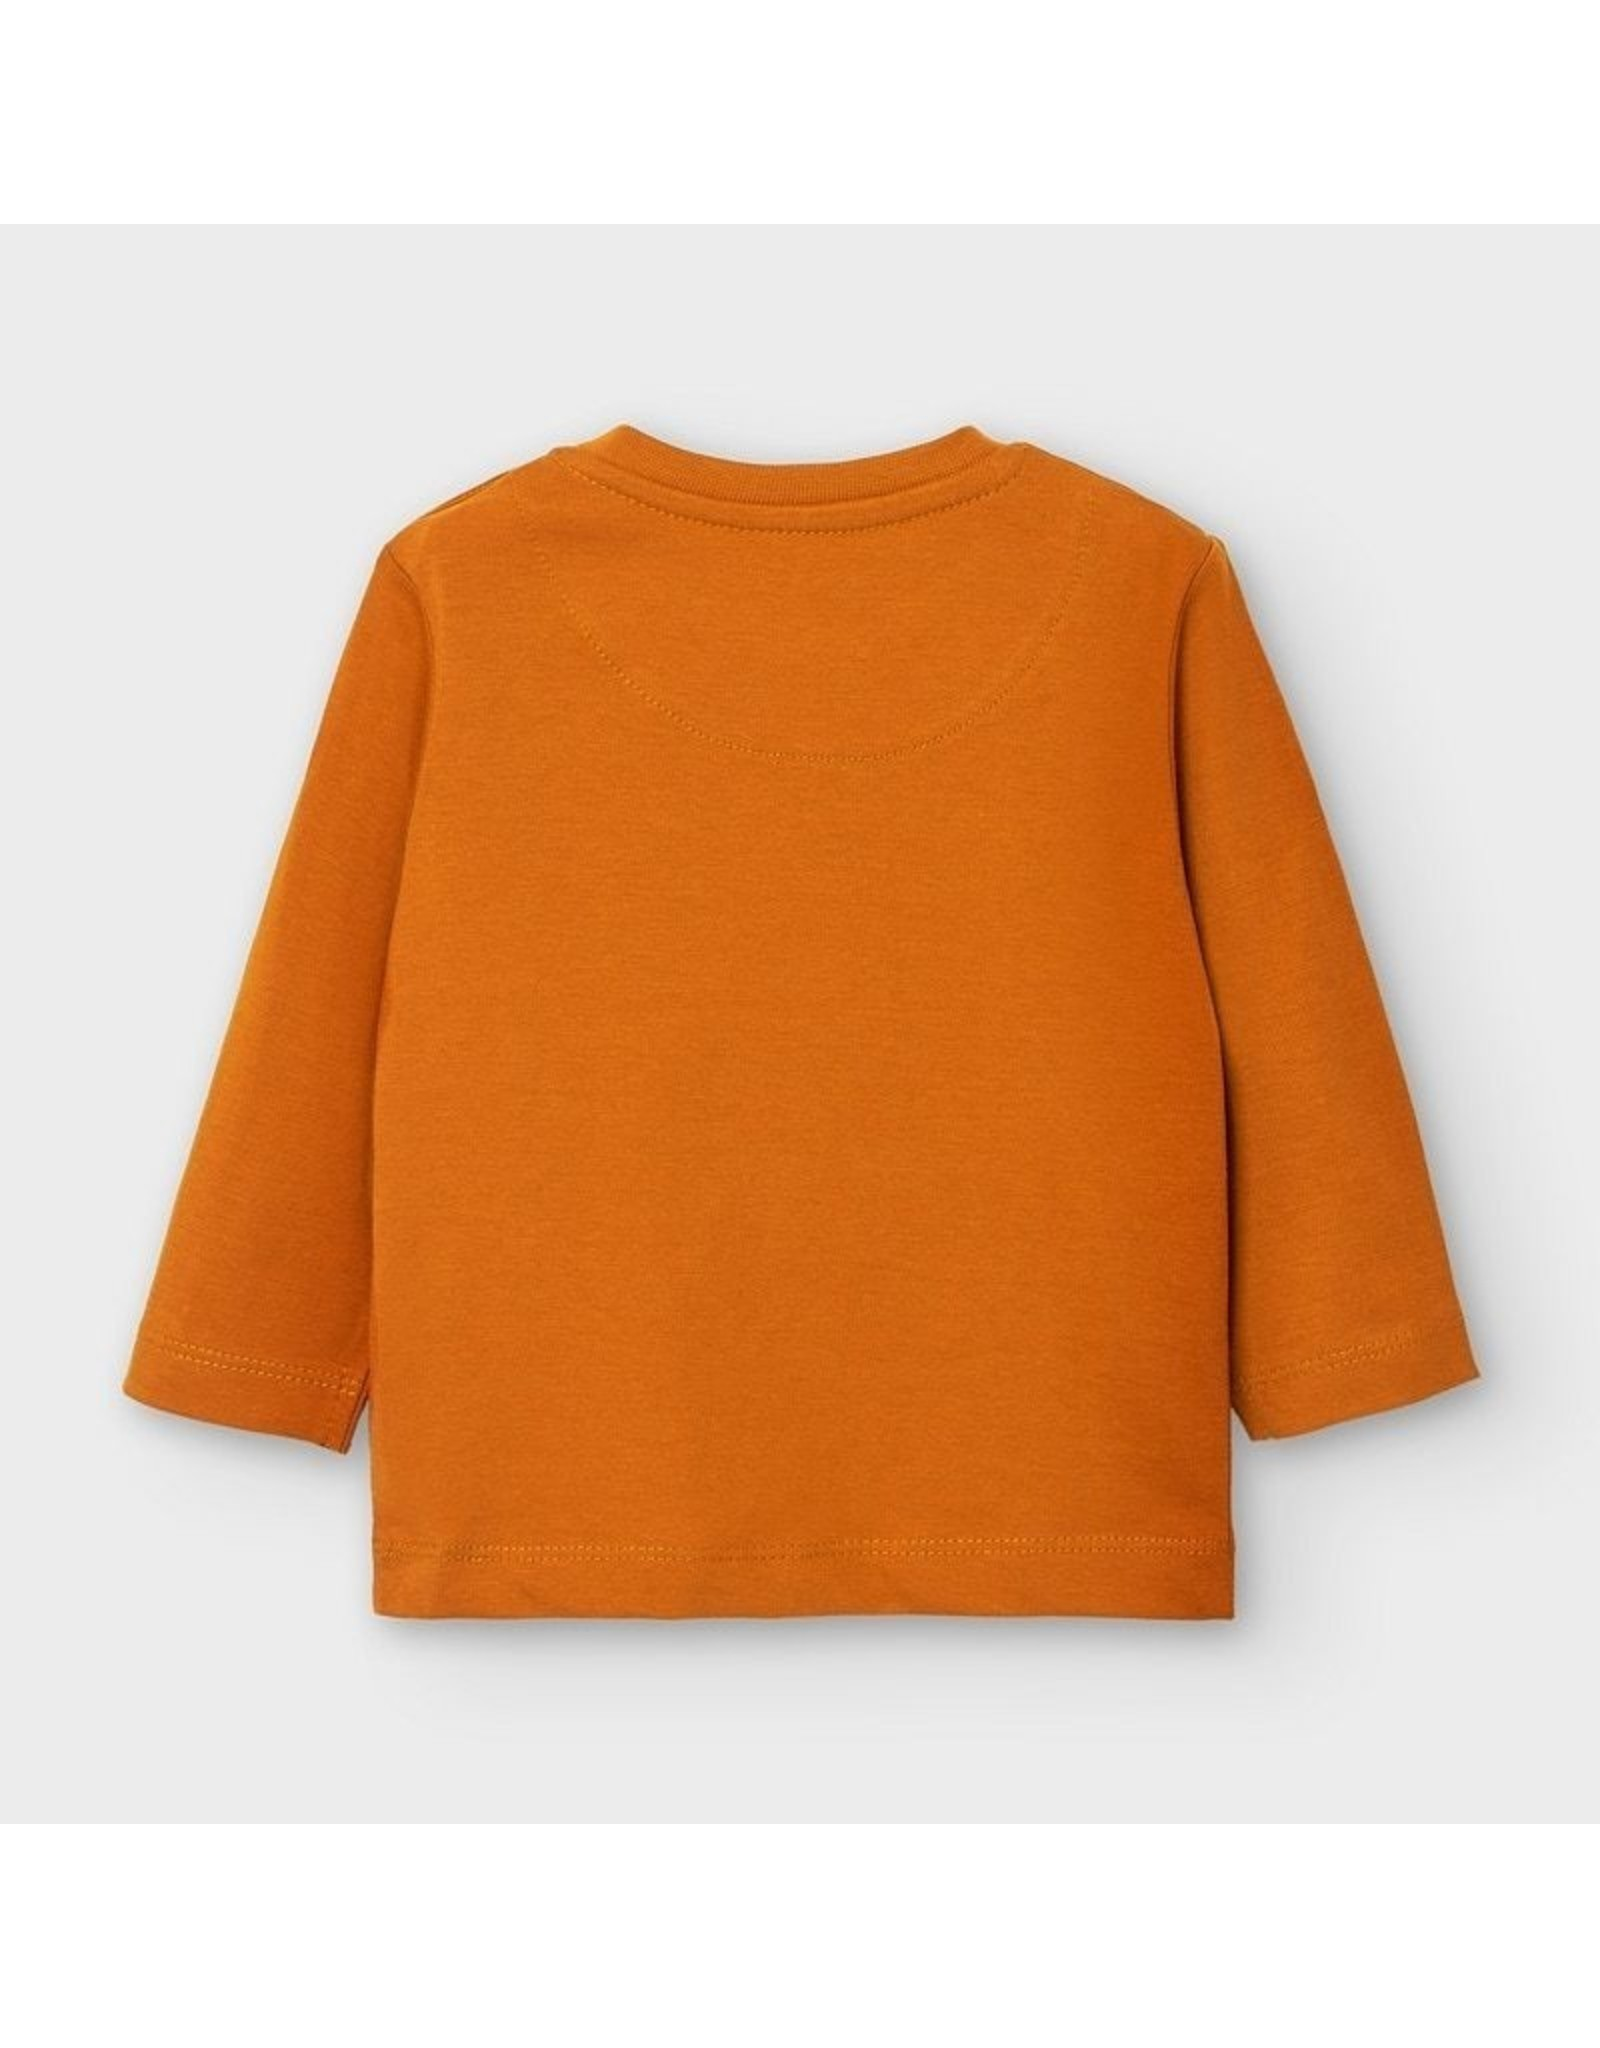 Mayoral L/s basic t-shirt Cheddar